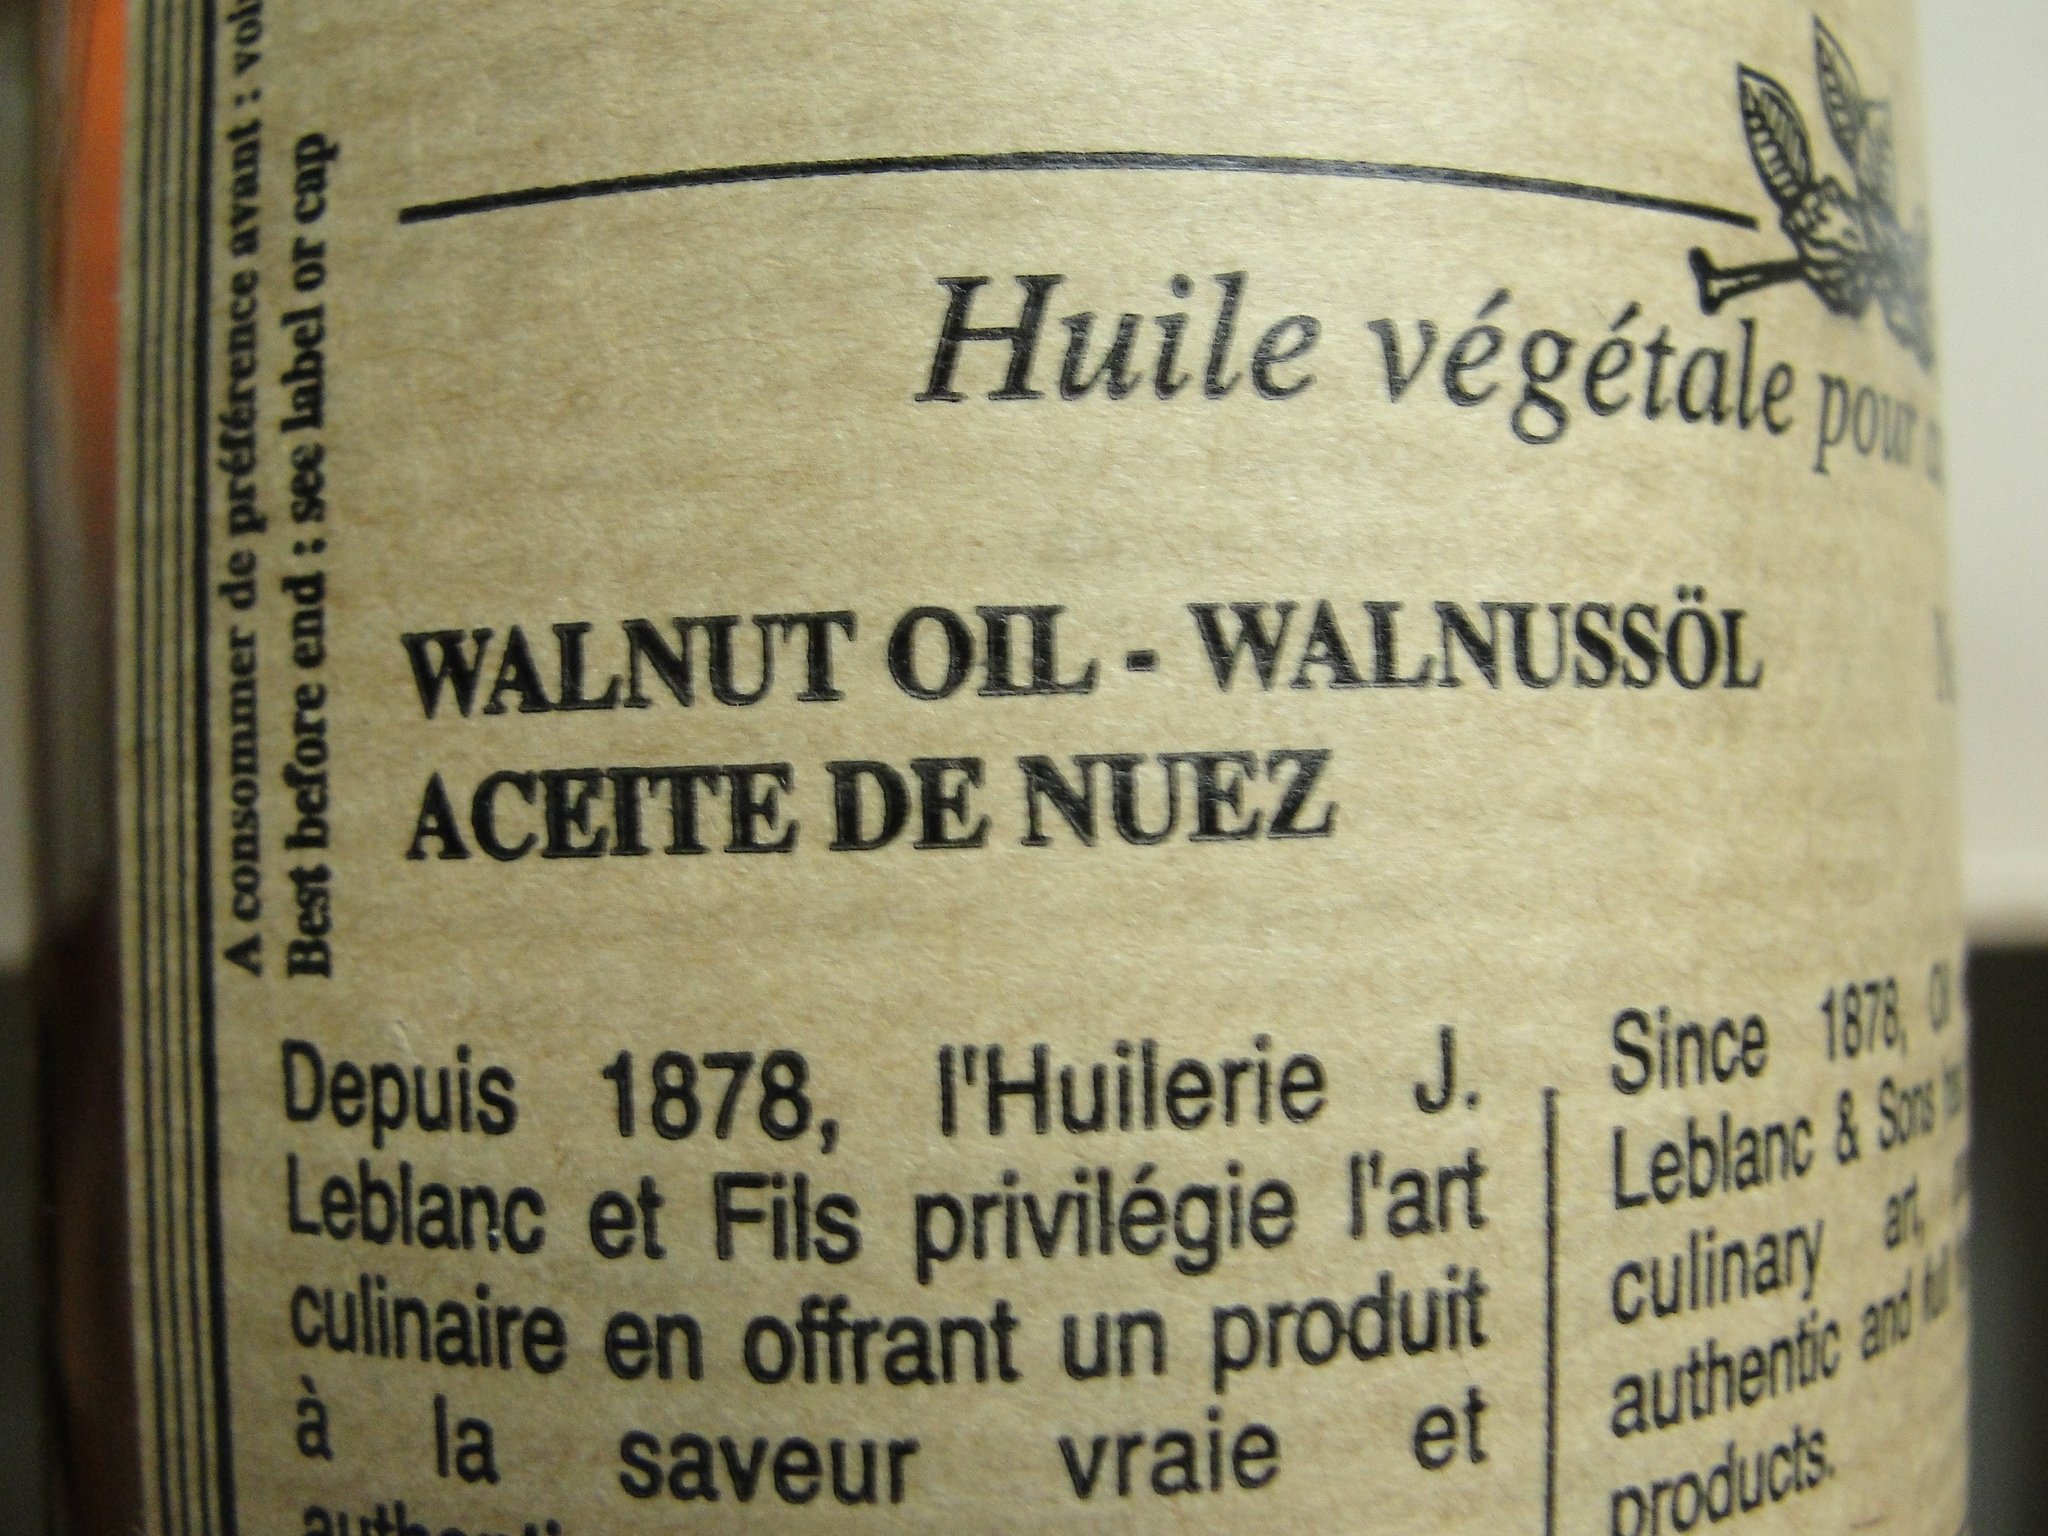 Jean LeBlanc French Walnut Oil Stone Mill cold pressed 16 fl oz